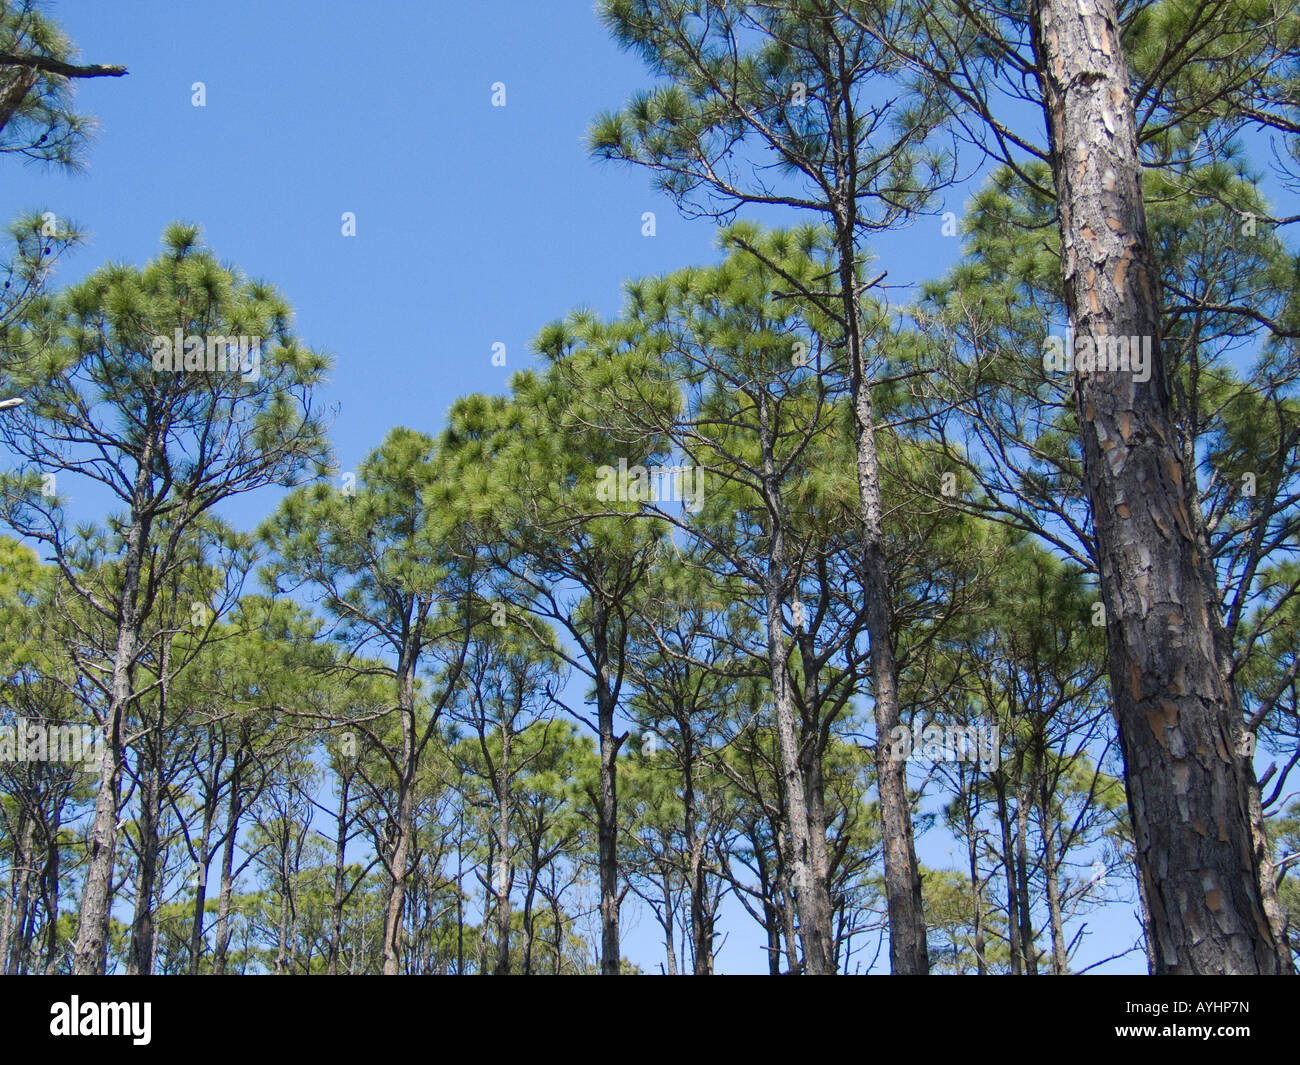 Dr Julian G Bruce St George Island State Park pine trees and blue sky - Stock Image